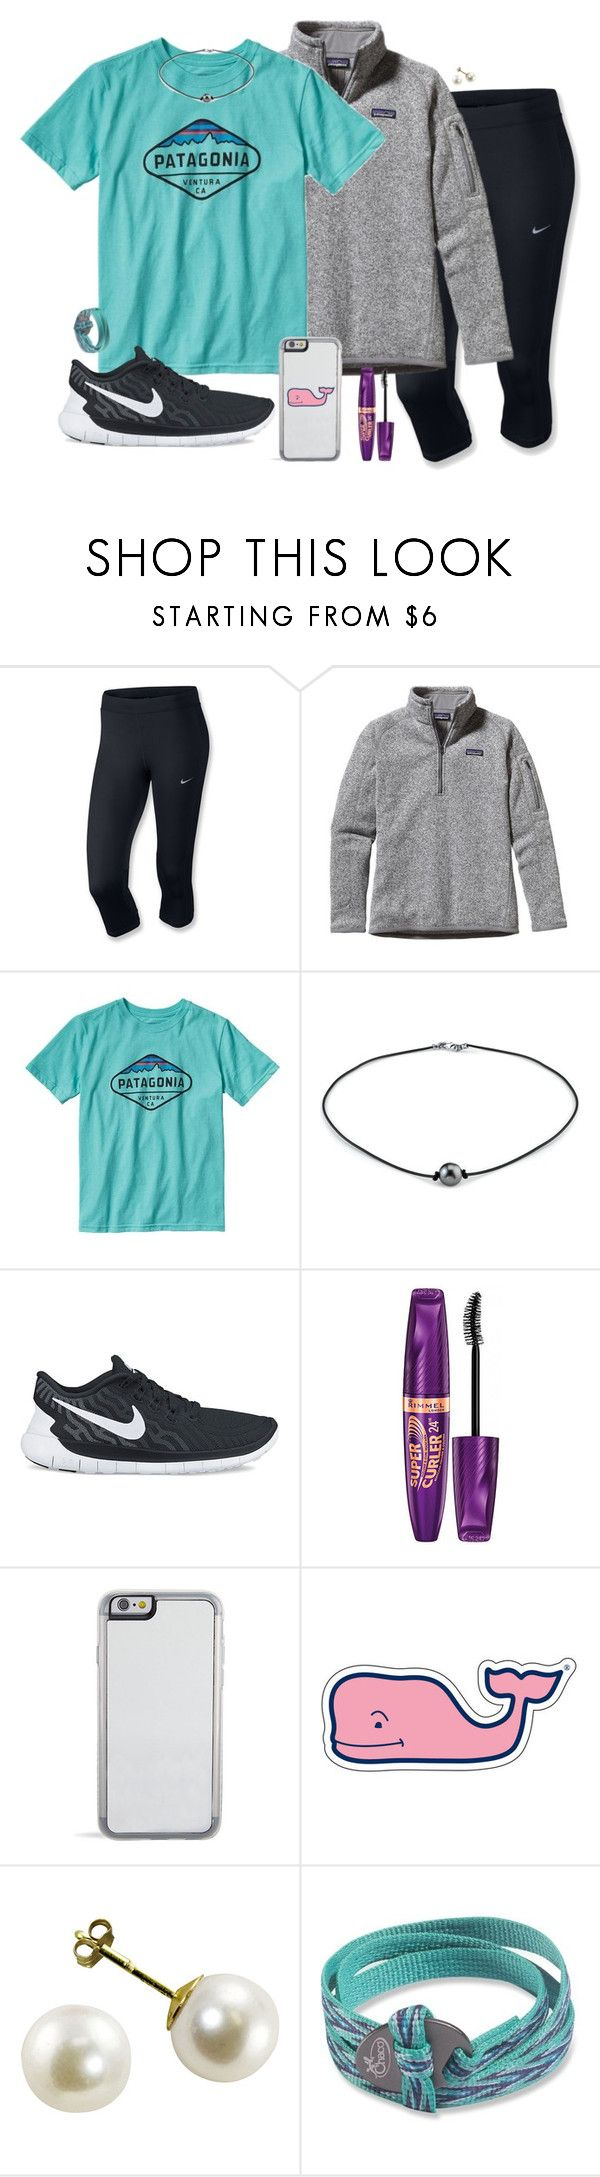 """cute pics at chewacla"" by madixoxo21 ❤ liked on Polyvore featuring NIKE, Patagonia, Rimmel, Vineyard Vines, Chaco, women's clothing, women's fashion, women, female and woman"